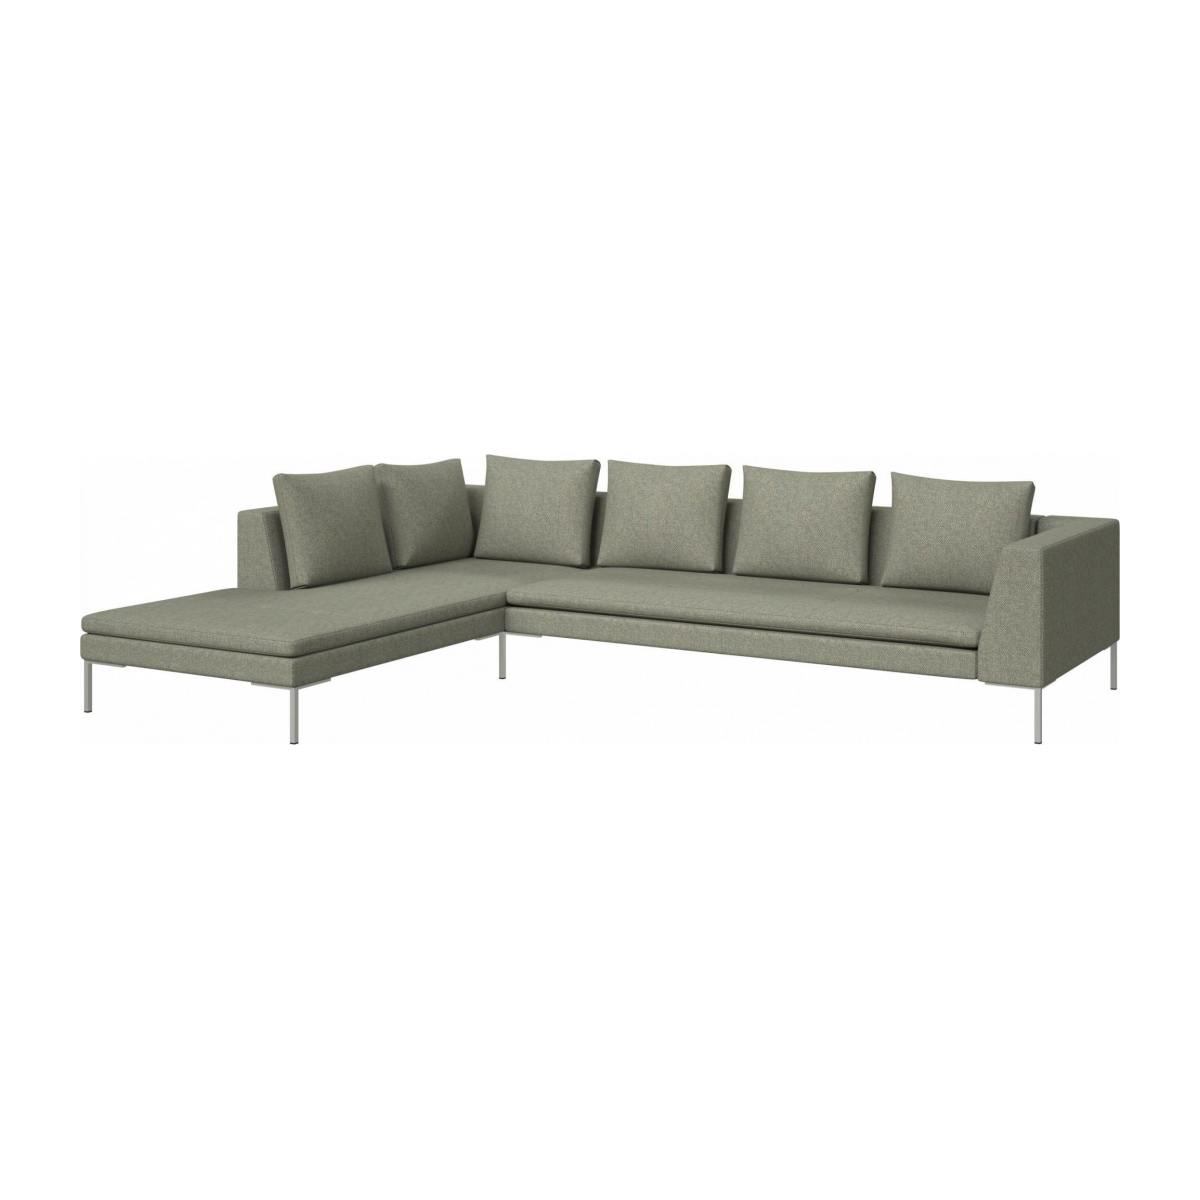 3 seater sofa with chaise longue on the left in Bellagio fabric, organic green  n°2